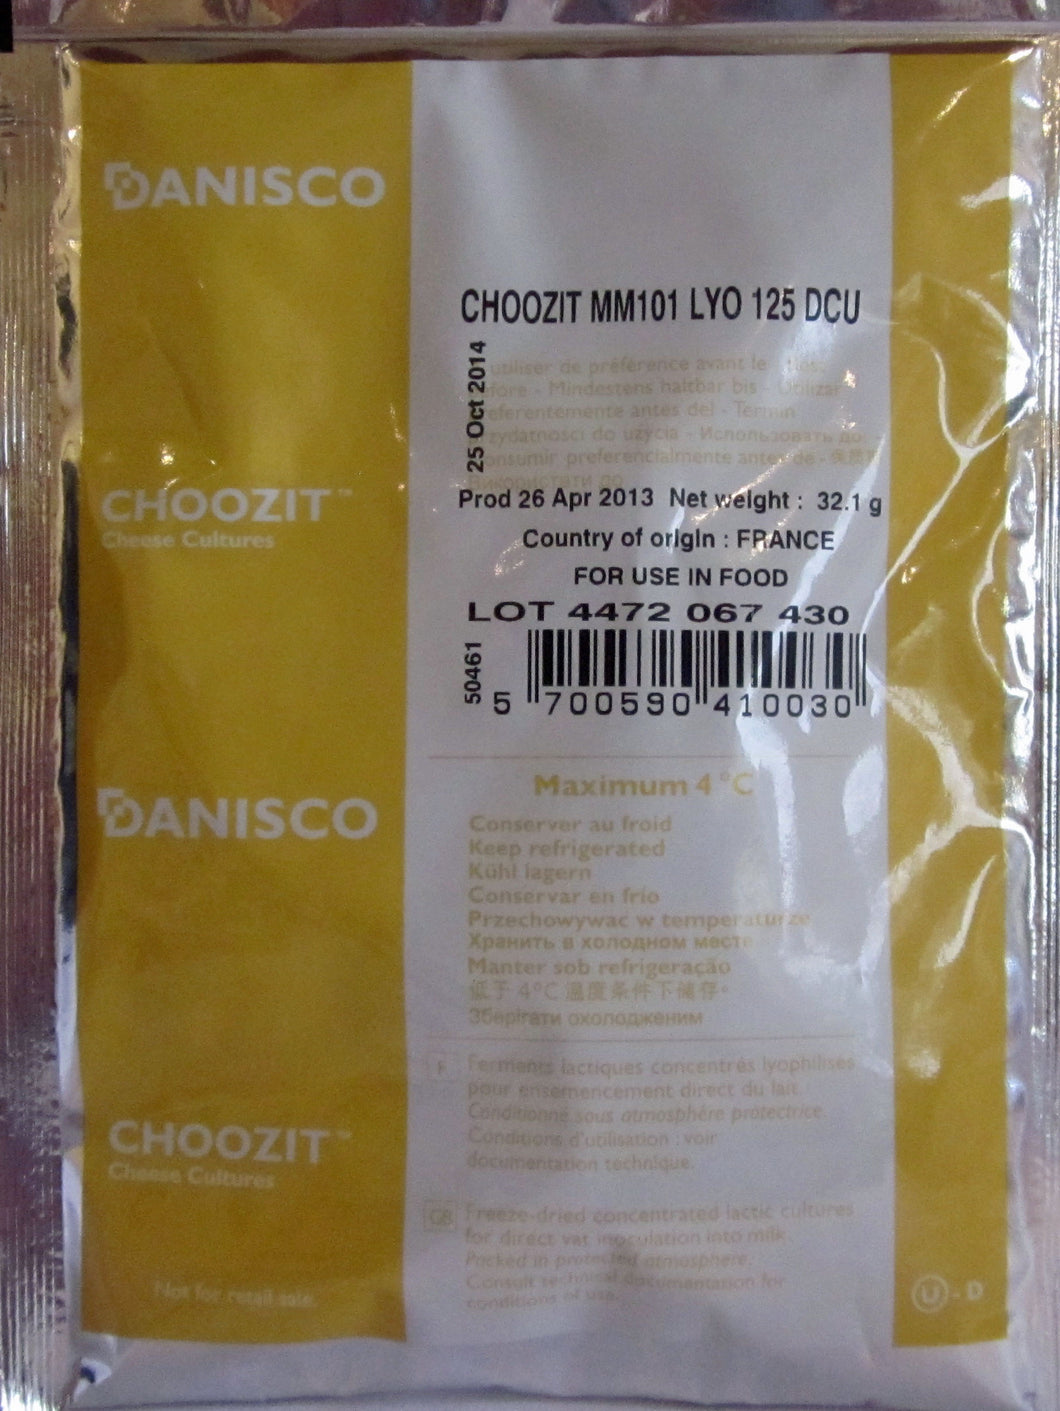 Danisco CHOOZIT MM101